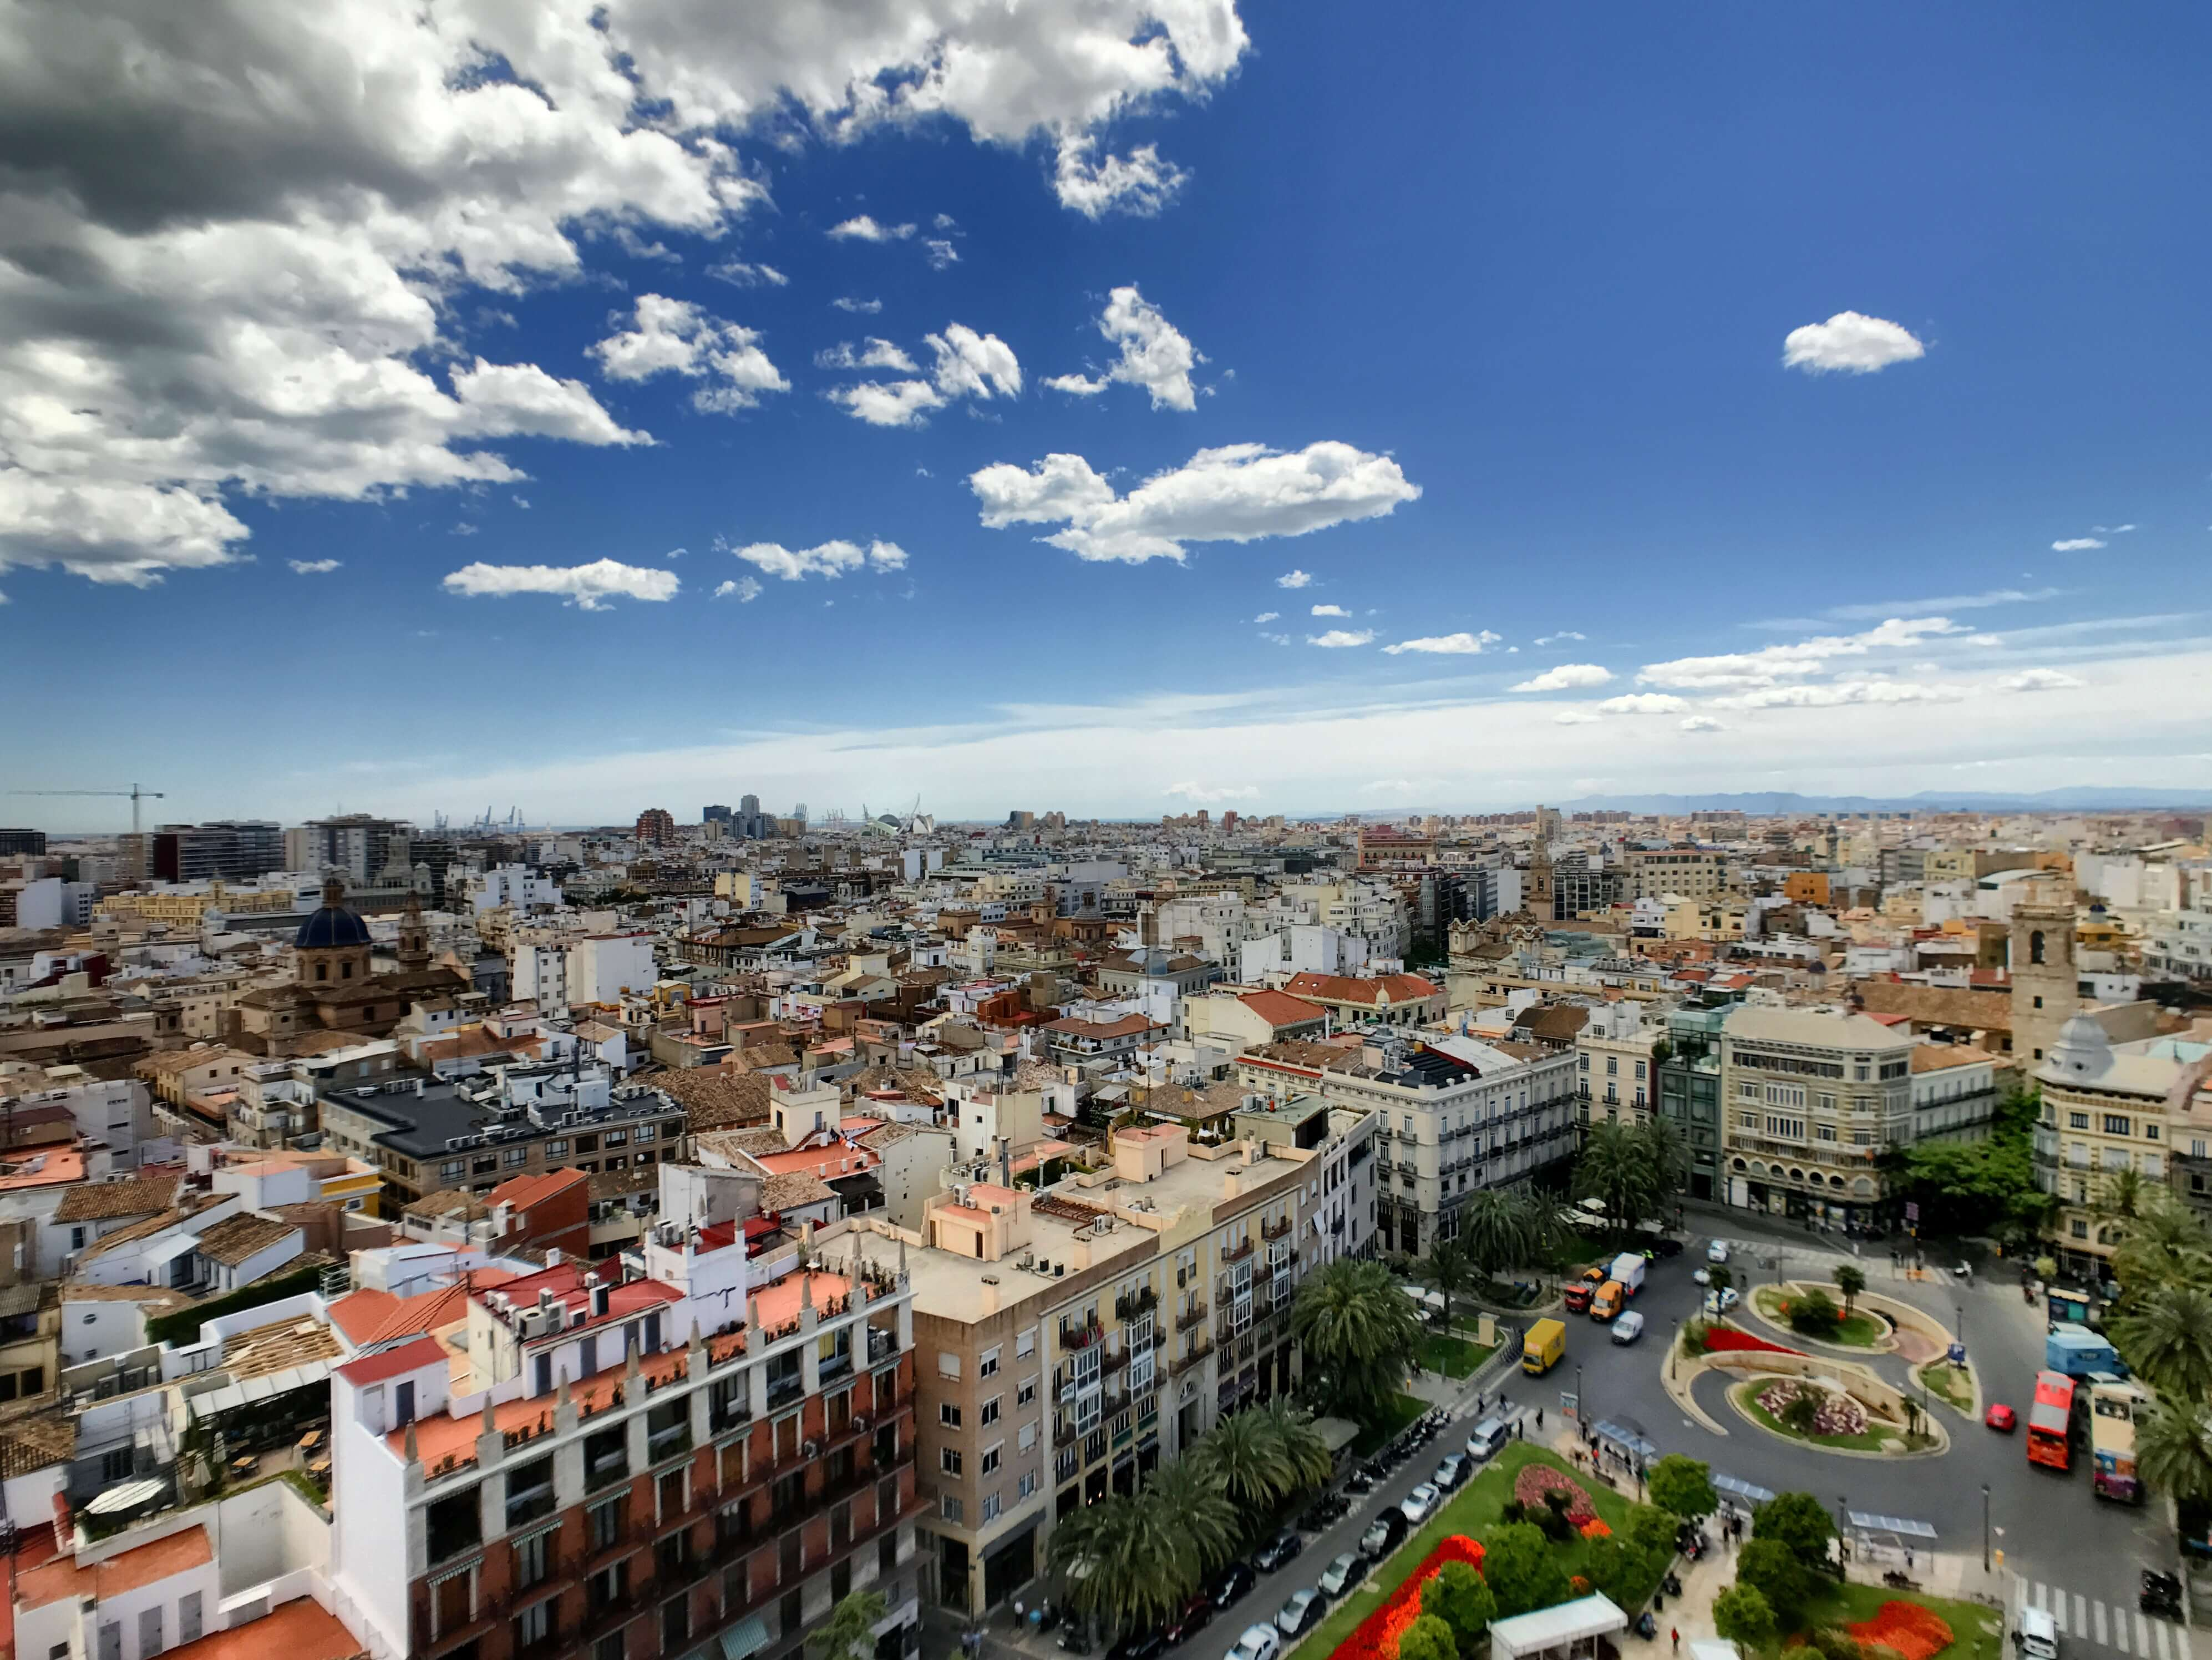 the pros and cons of living in Valencia, Spain can be difficult for northern expats